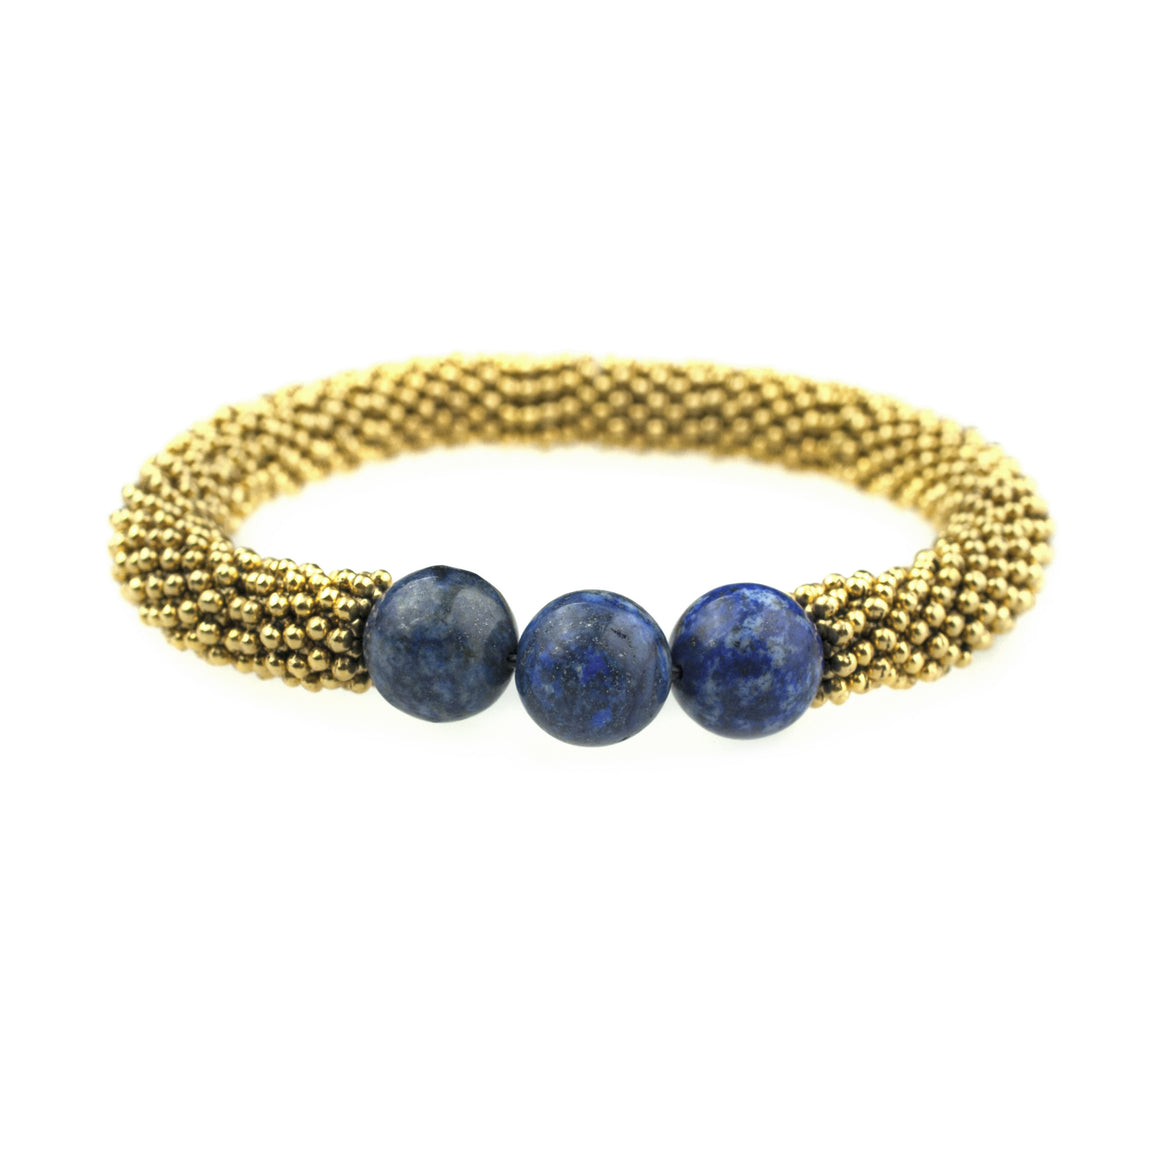 September Accent Bracelet In Gold